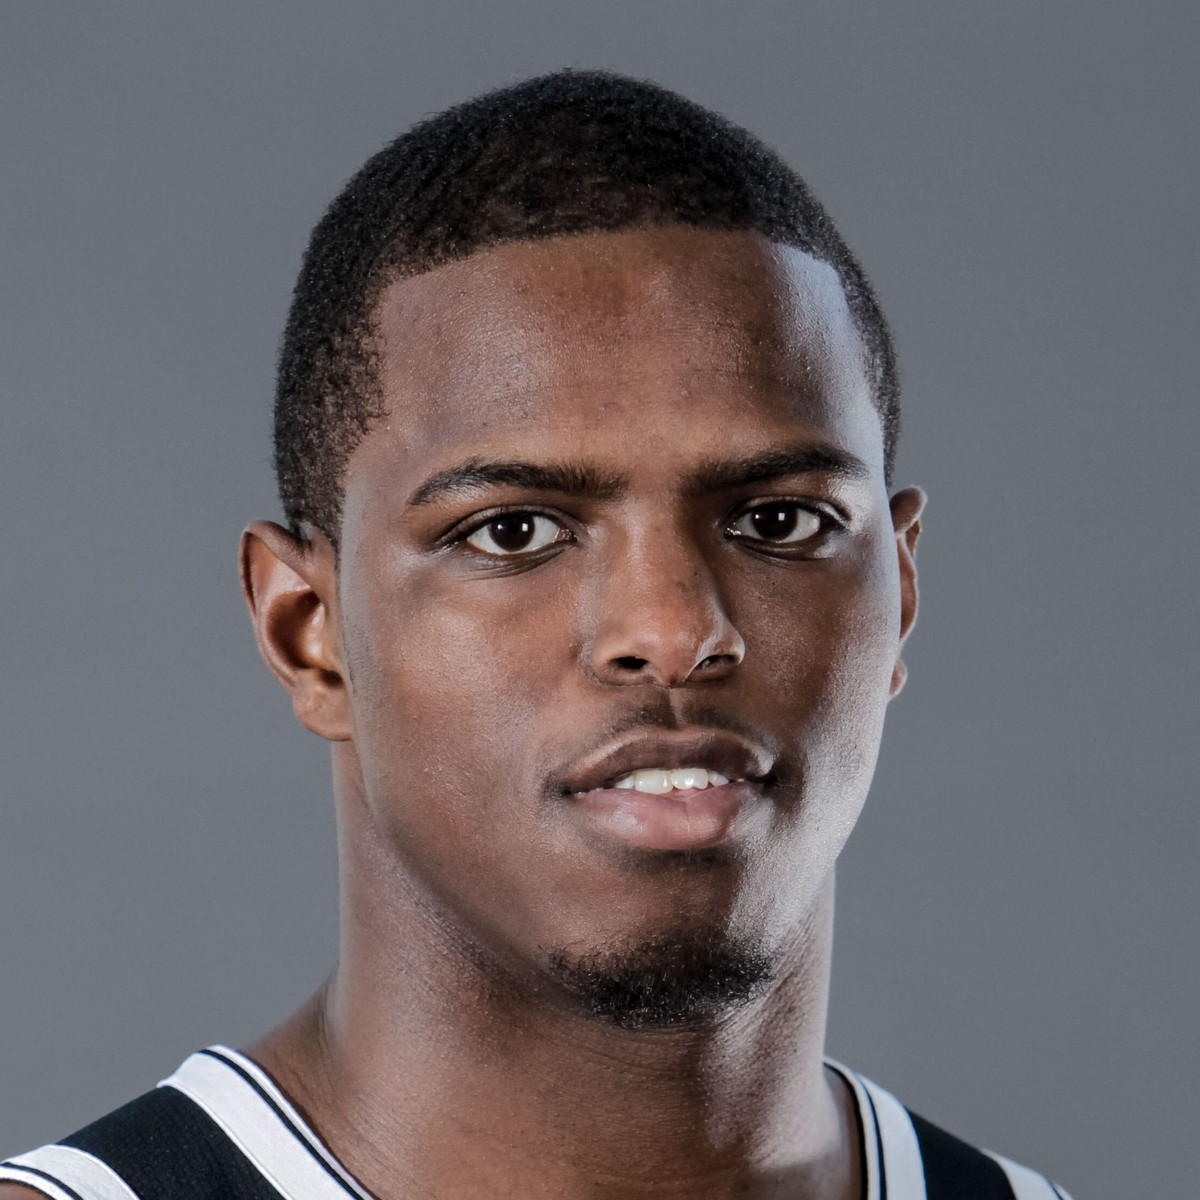 039278bf7f3 Isaiah Whitehead (foot) will not play on Tuesday  Lin to start ...